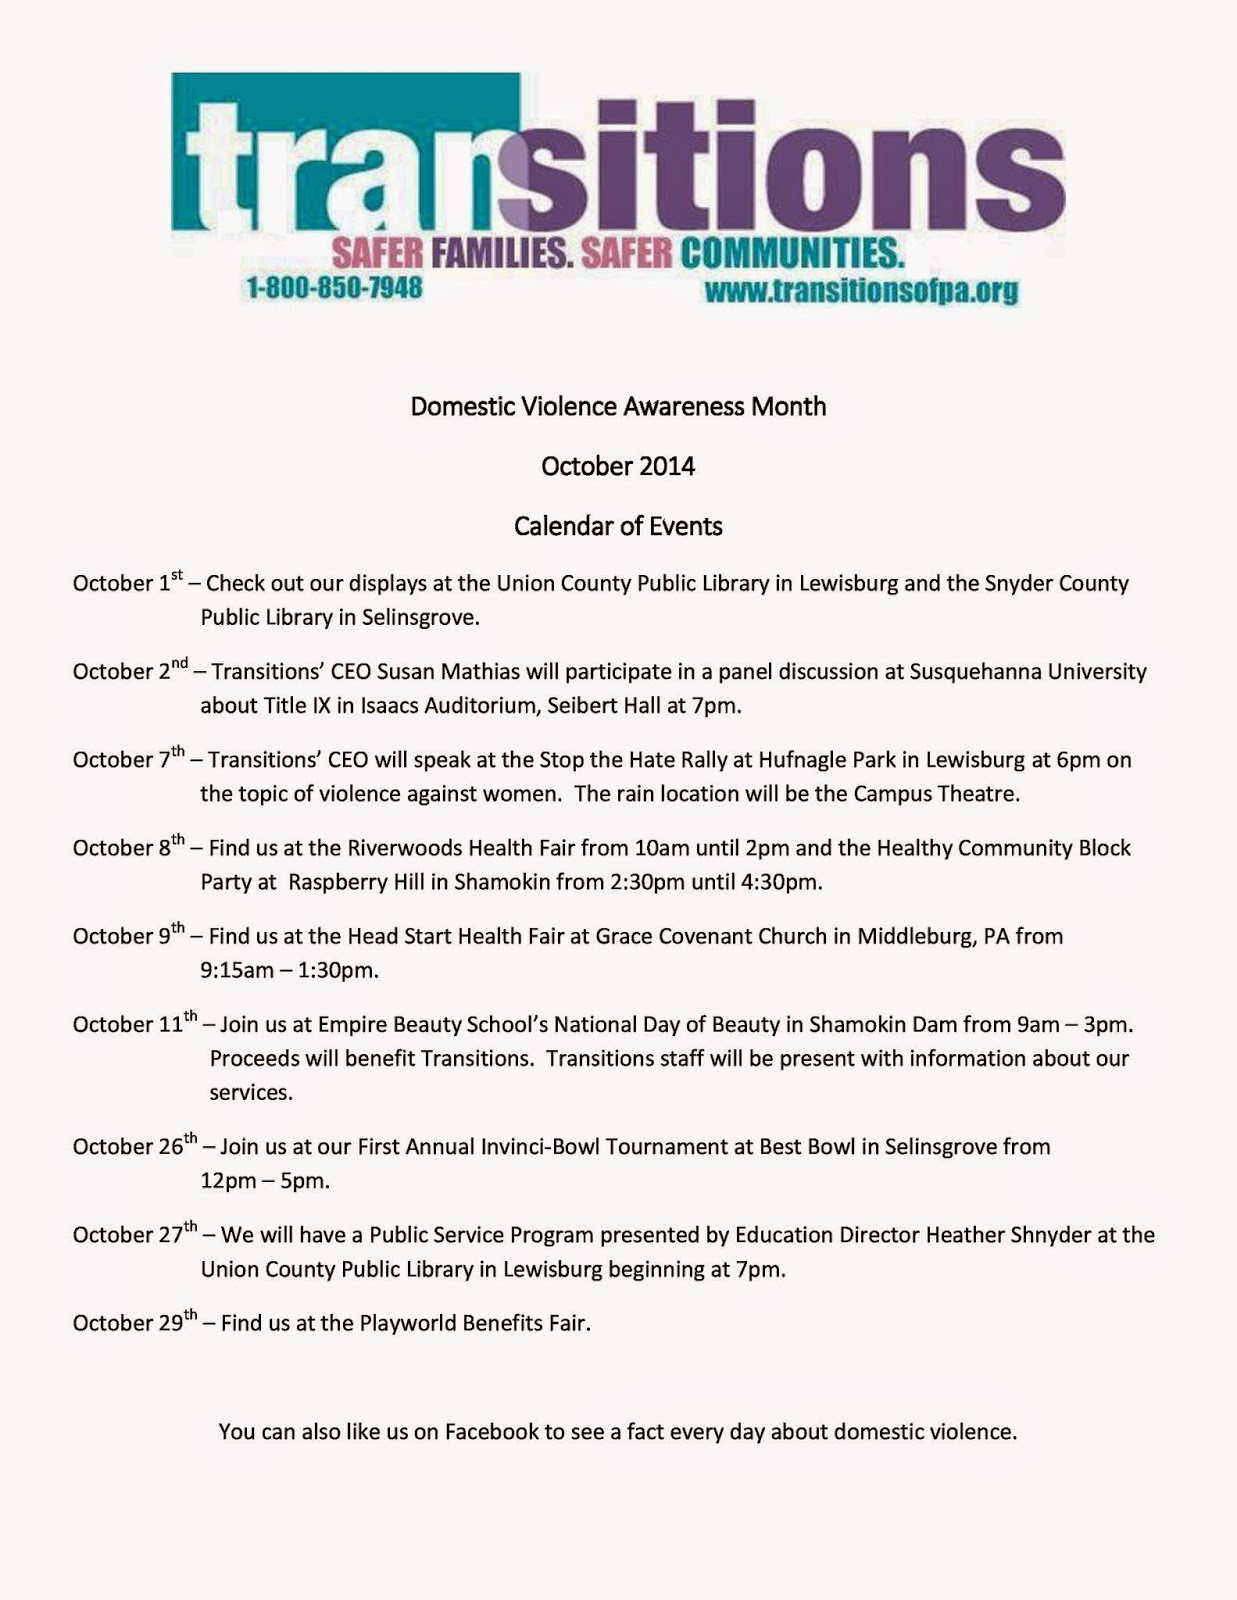 Transitioning Times Overview Of Domestic Violence Awareness Month Activities